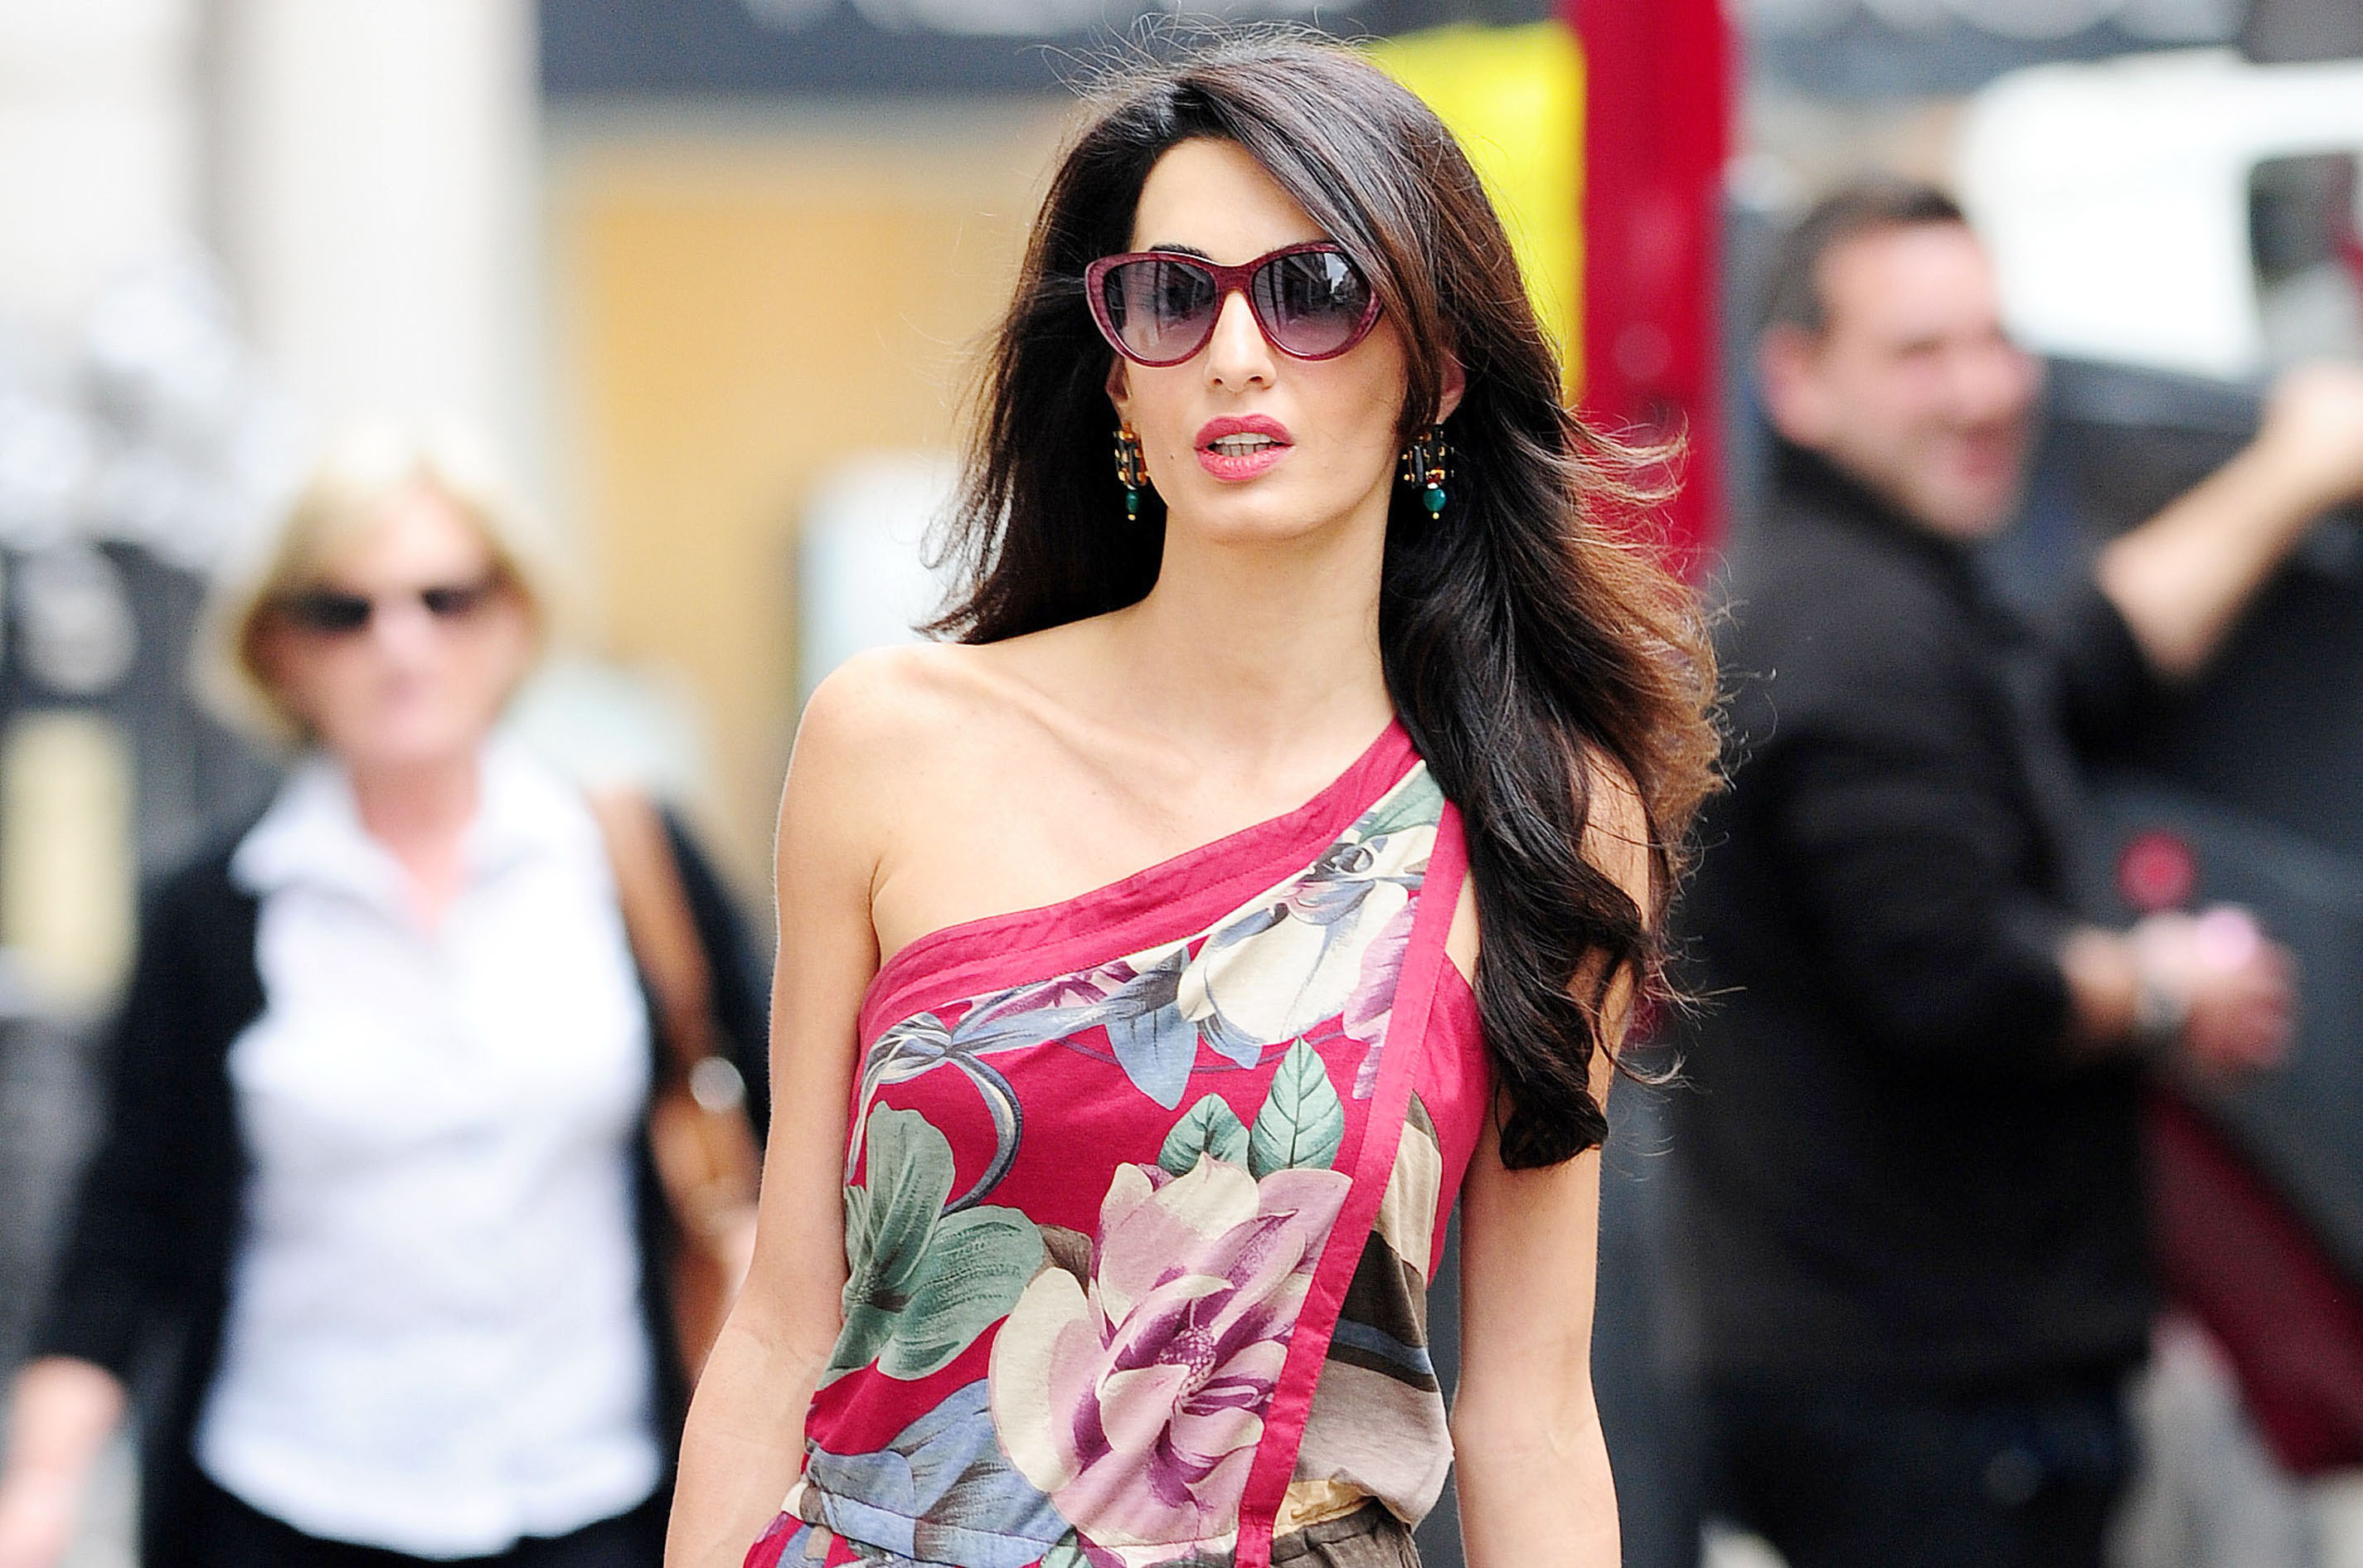 EXC - AMAL ALAMUDDIN AND HER MOTHER BARIA SPEND THE DAY TOGETHER